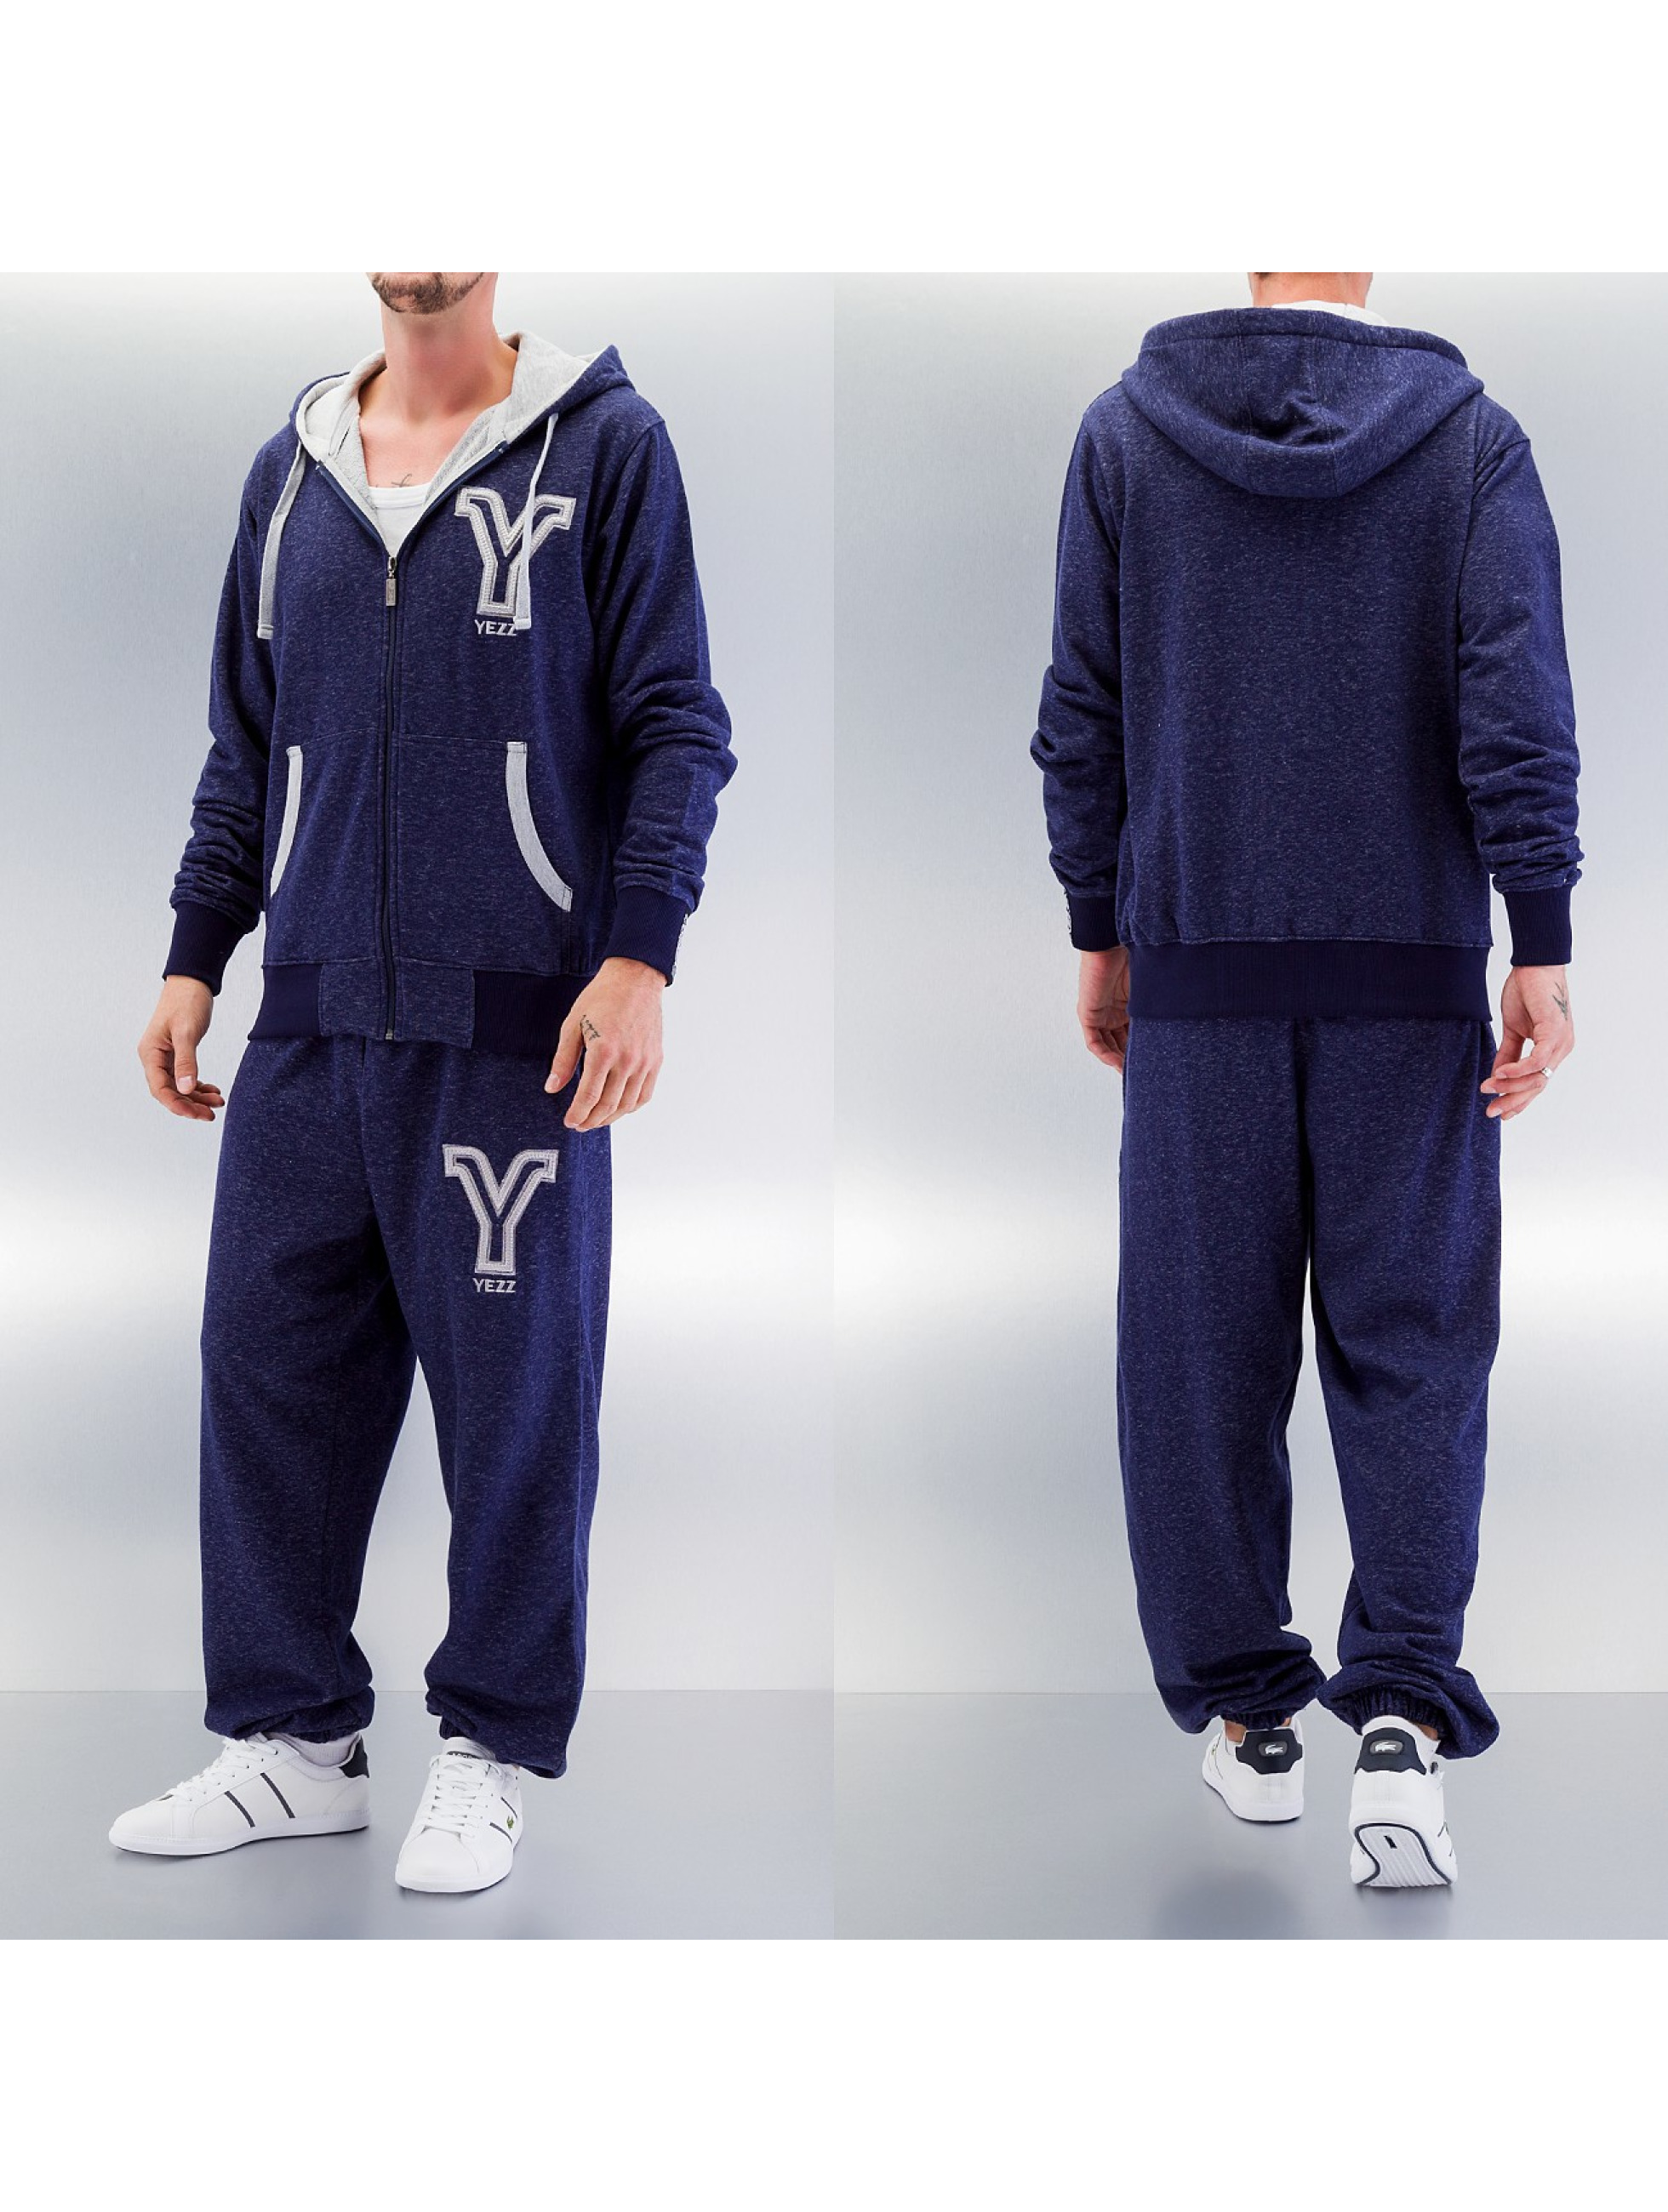 Yezz 3 Tone Sweat Suit Navy Denim